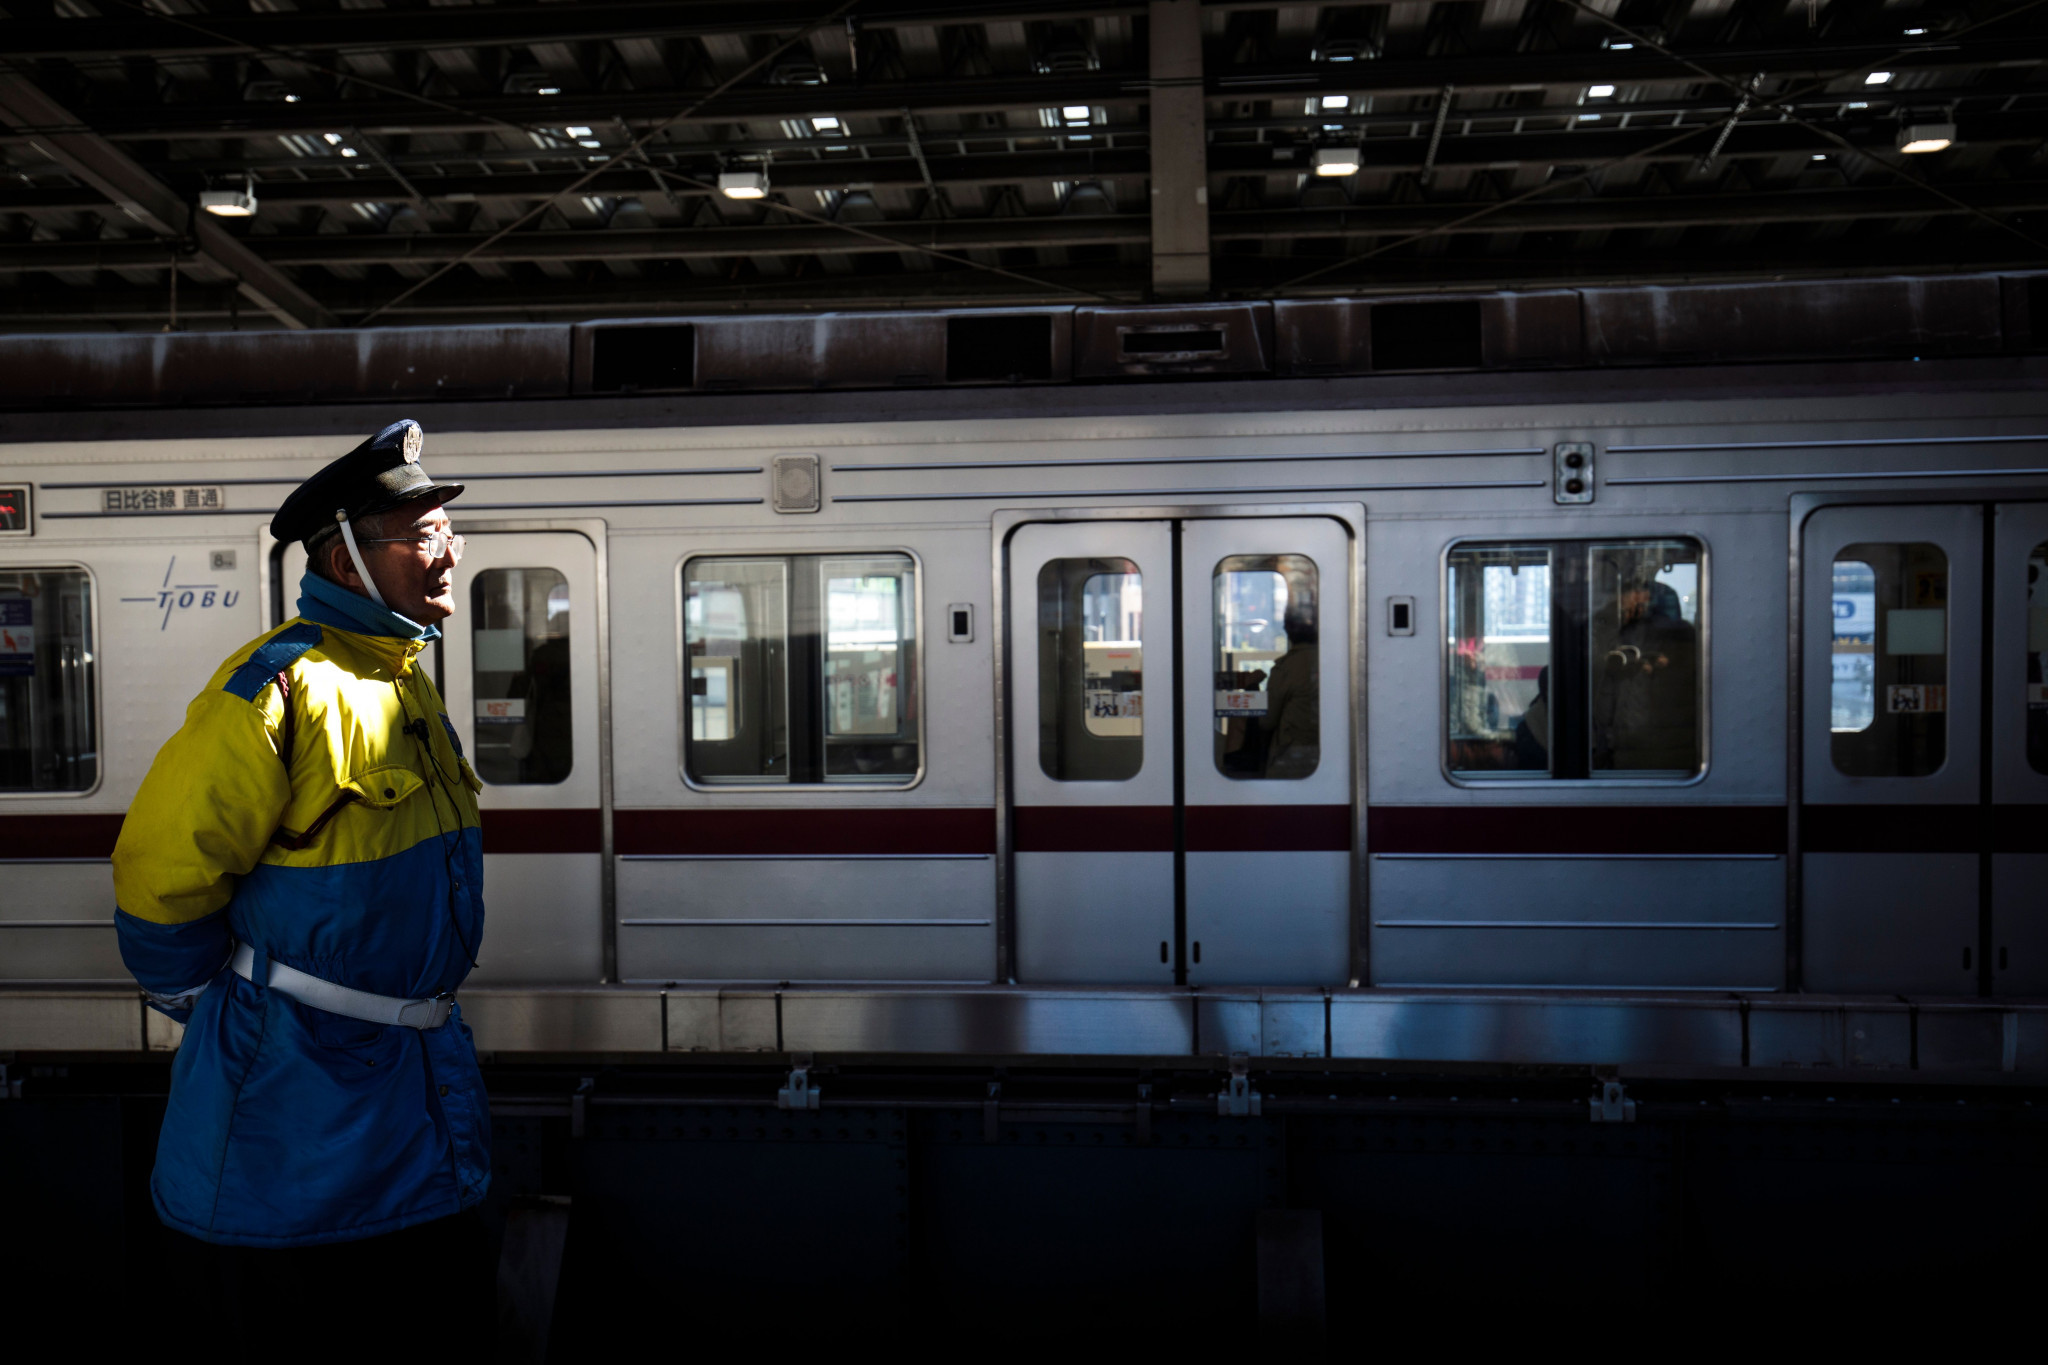 Late-night train services planned for Tokyo 2020